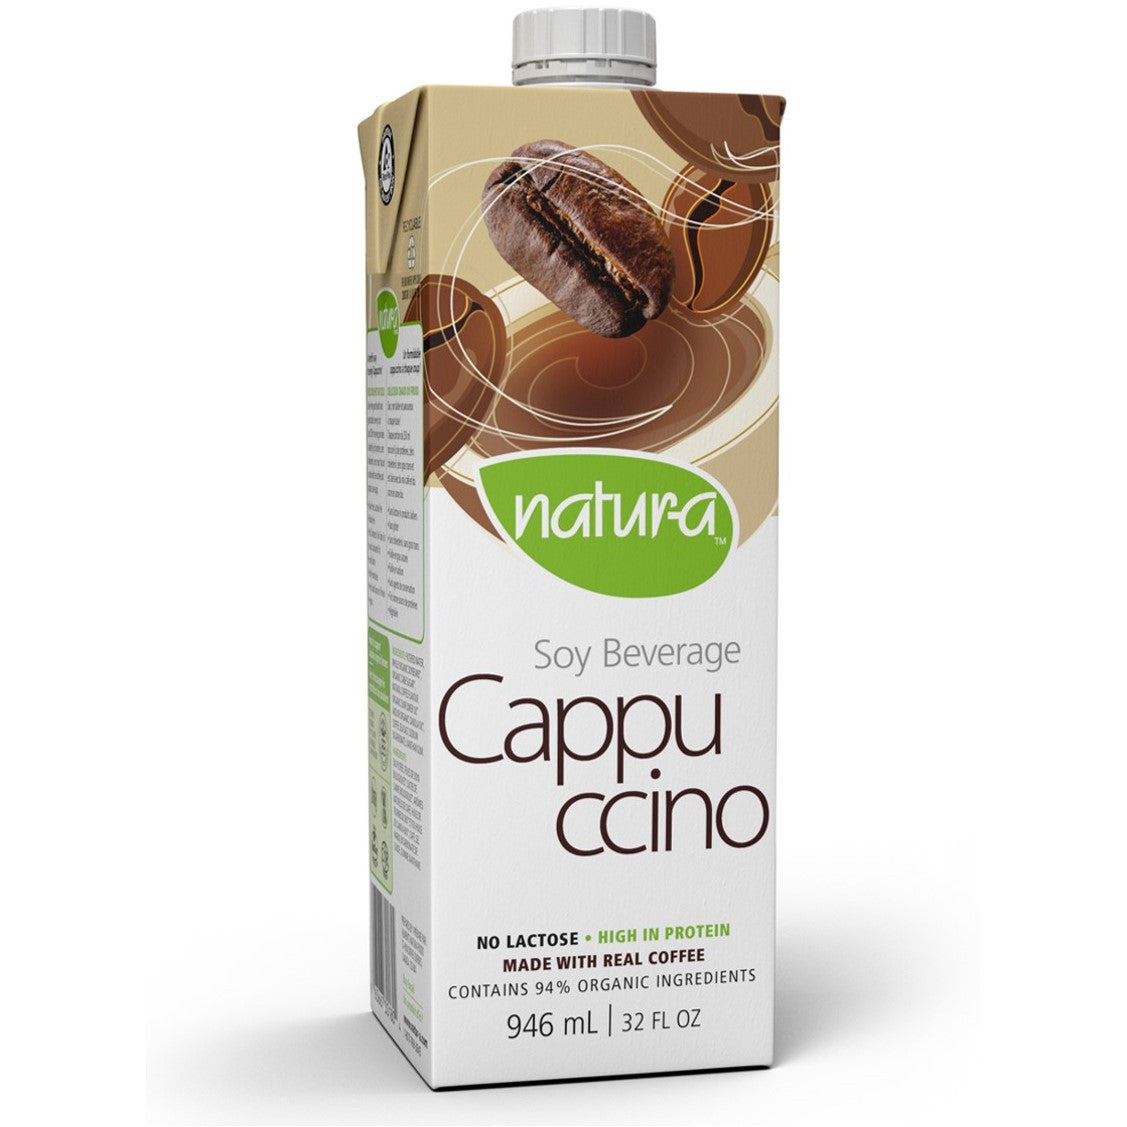 Natur-a Enriched Soy Beverage - Cappuccino (Organic), 946 ml.-NaturesWisdom